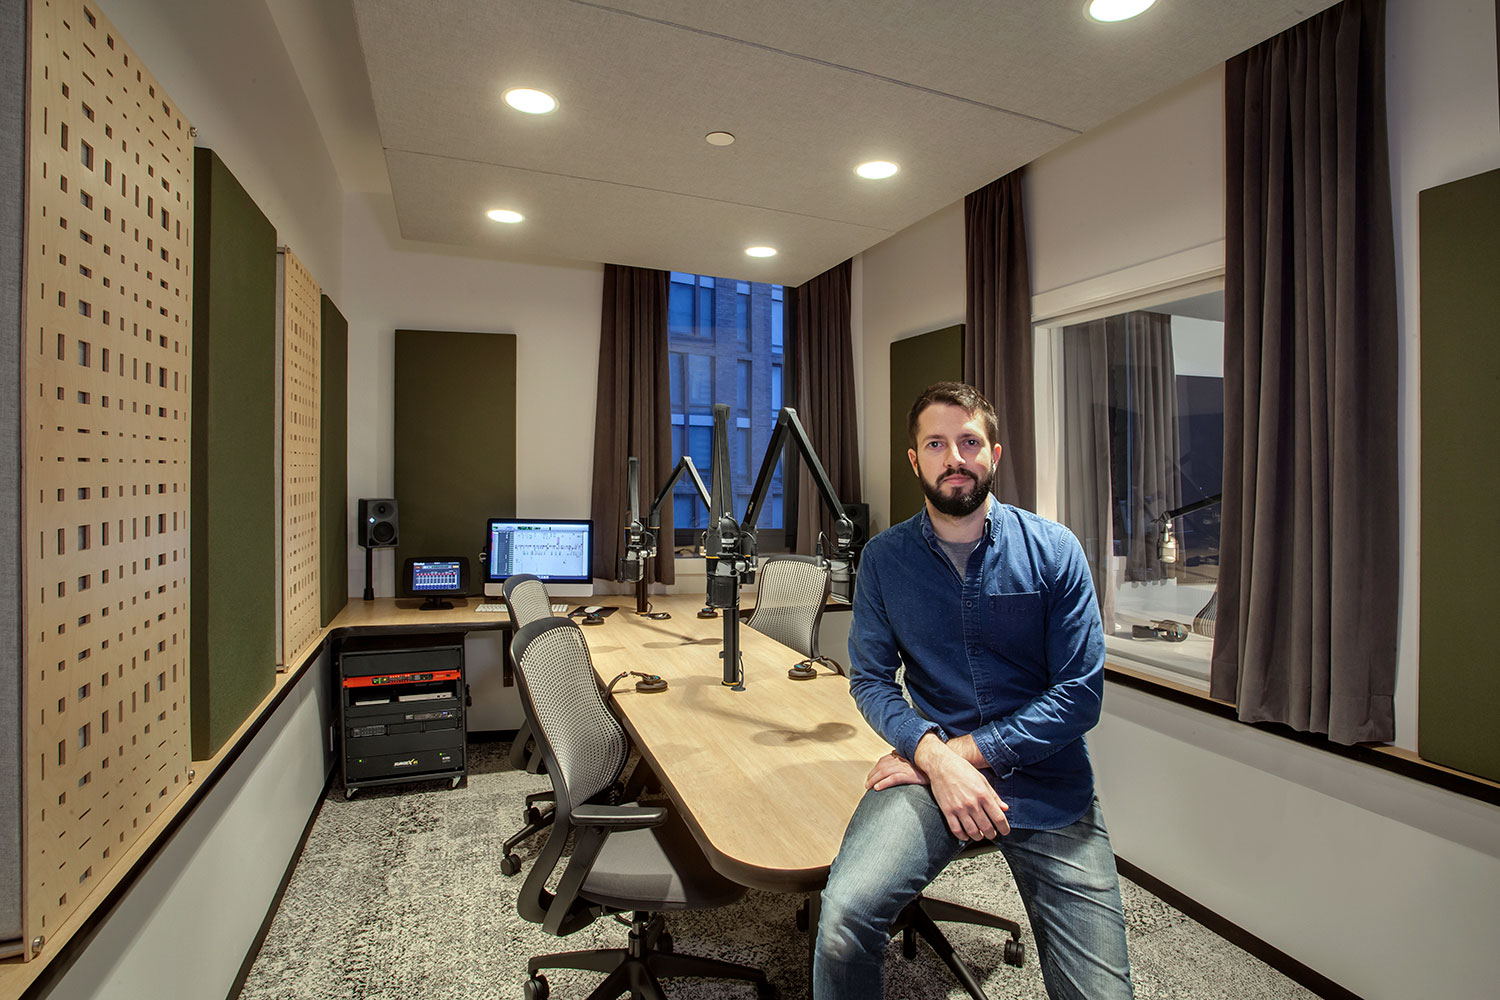 Gimlet Media, the award winning podcast production company is setting the standard in podcast creation studios with its new 28,000 square foot production facility. Designed by the acoustic architectural firm WSDG, it catapults Gimlet's podcasting operations from a modest studio operation to a commercial-grade. Audio engineer Austin Thompson at Studio 787.